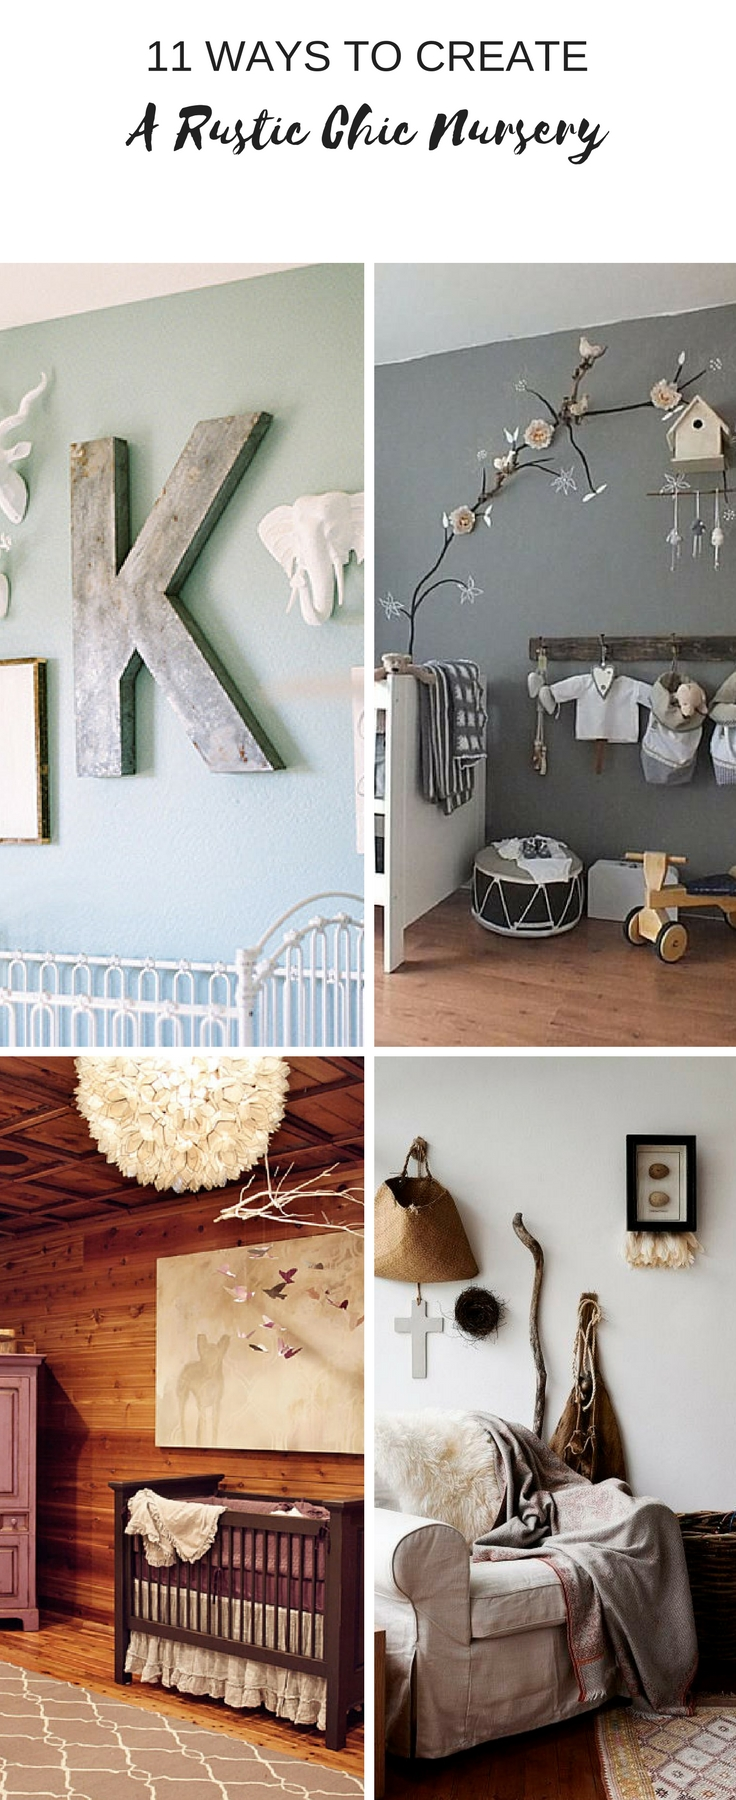 rustic chic nursery designs